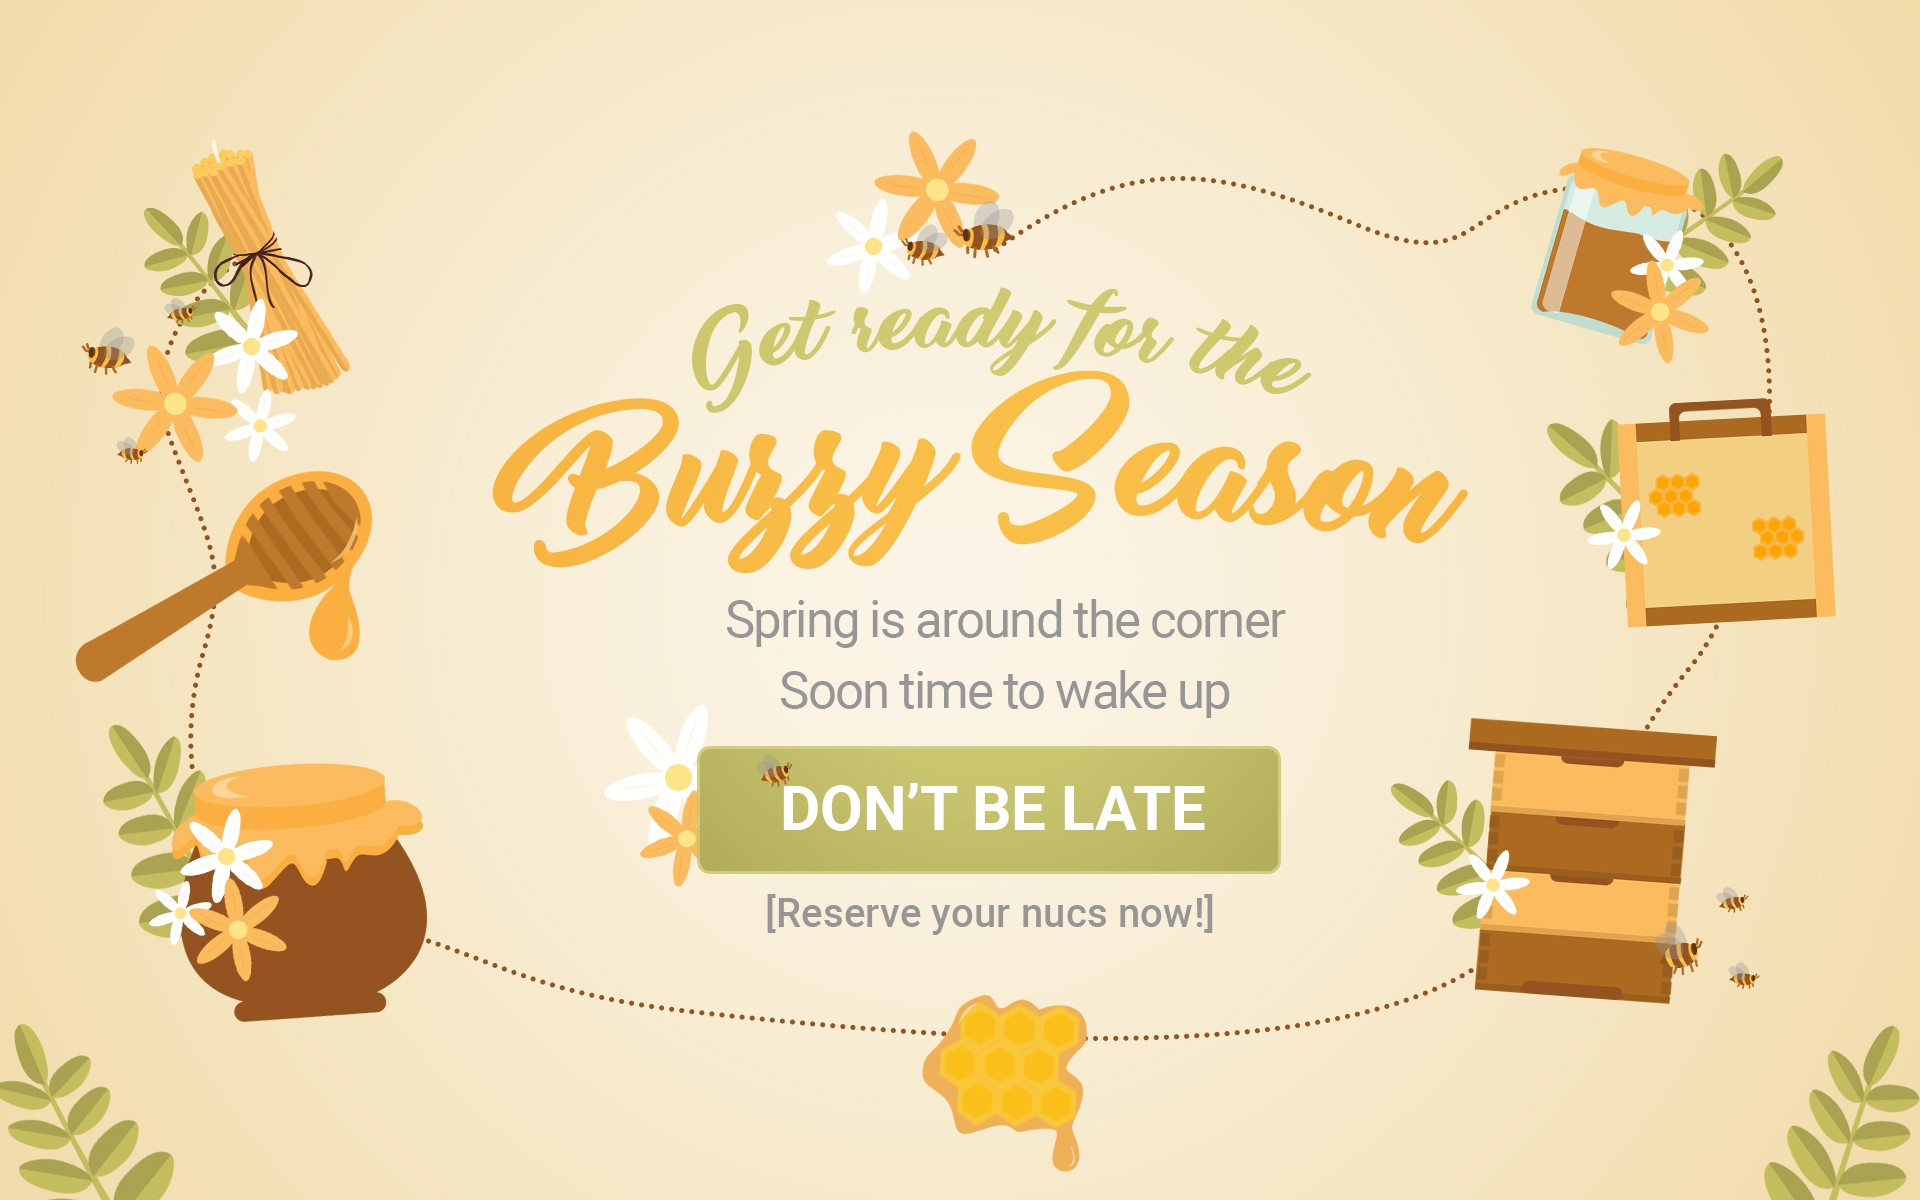 Bee colony to sell - Home Page Slide design, creatives are welcome!